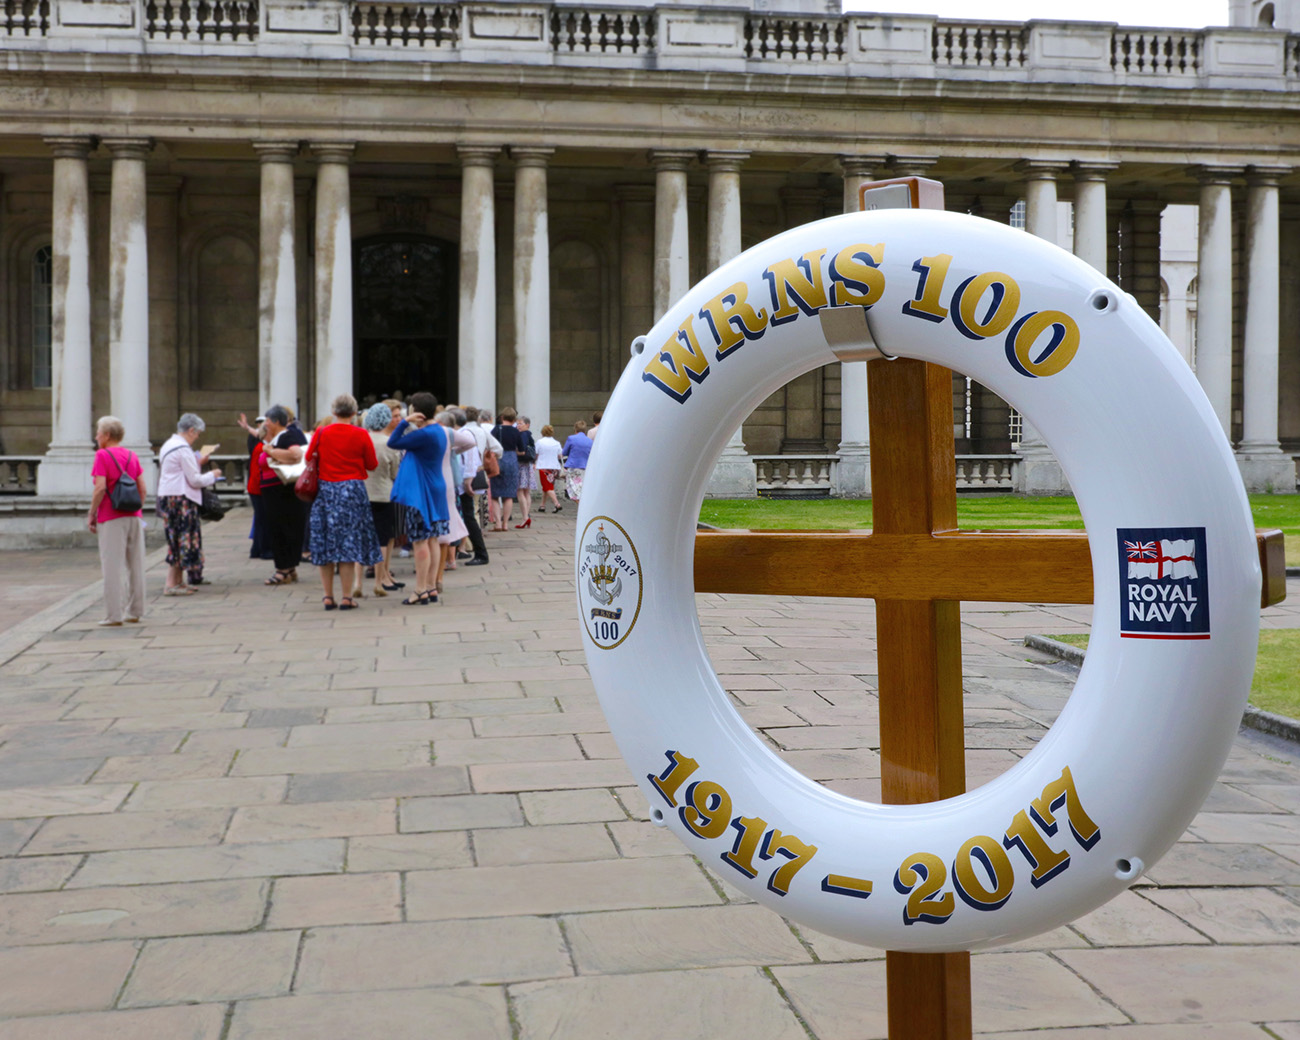 Naval Servicewomen gather at Greenwich for WRNS100 celebration